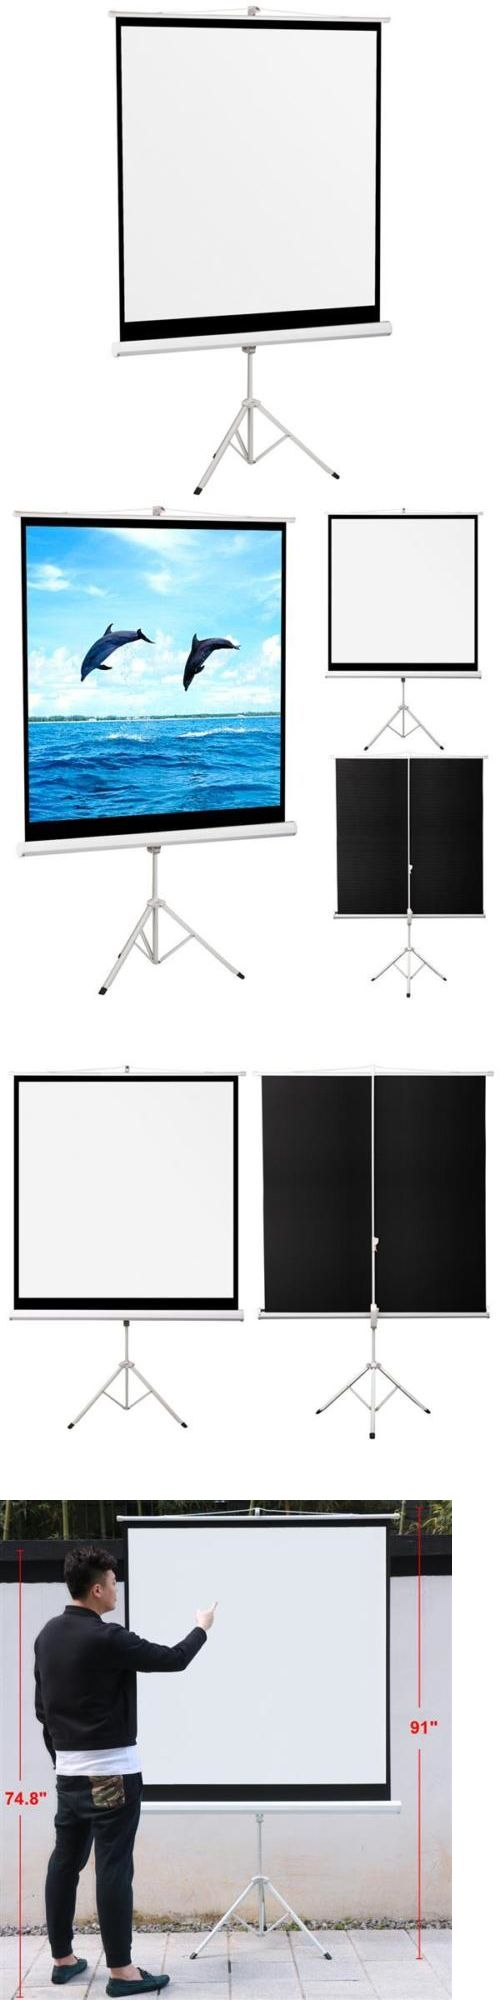 Projection Screens and Material: 70 Portable Projector Screen 125X125cm Projection Pull Up Foldable Stand Tripod -> BUY IT NOW ONLY: $34 on eBay!